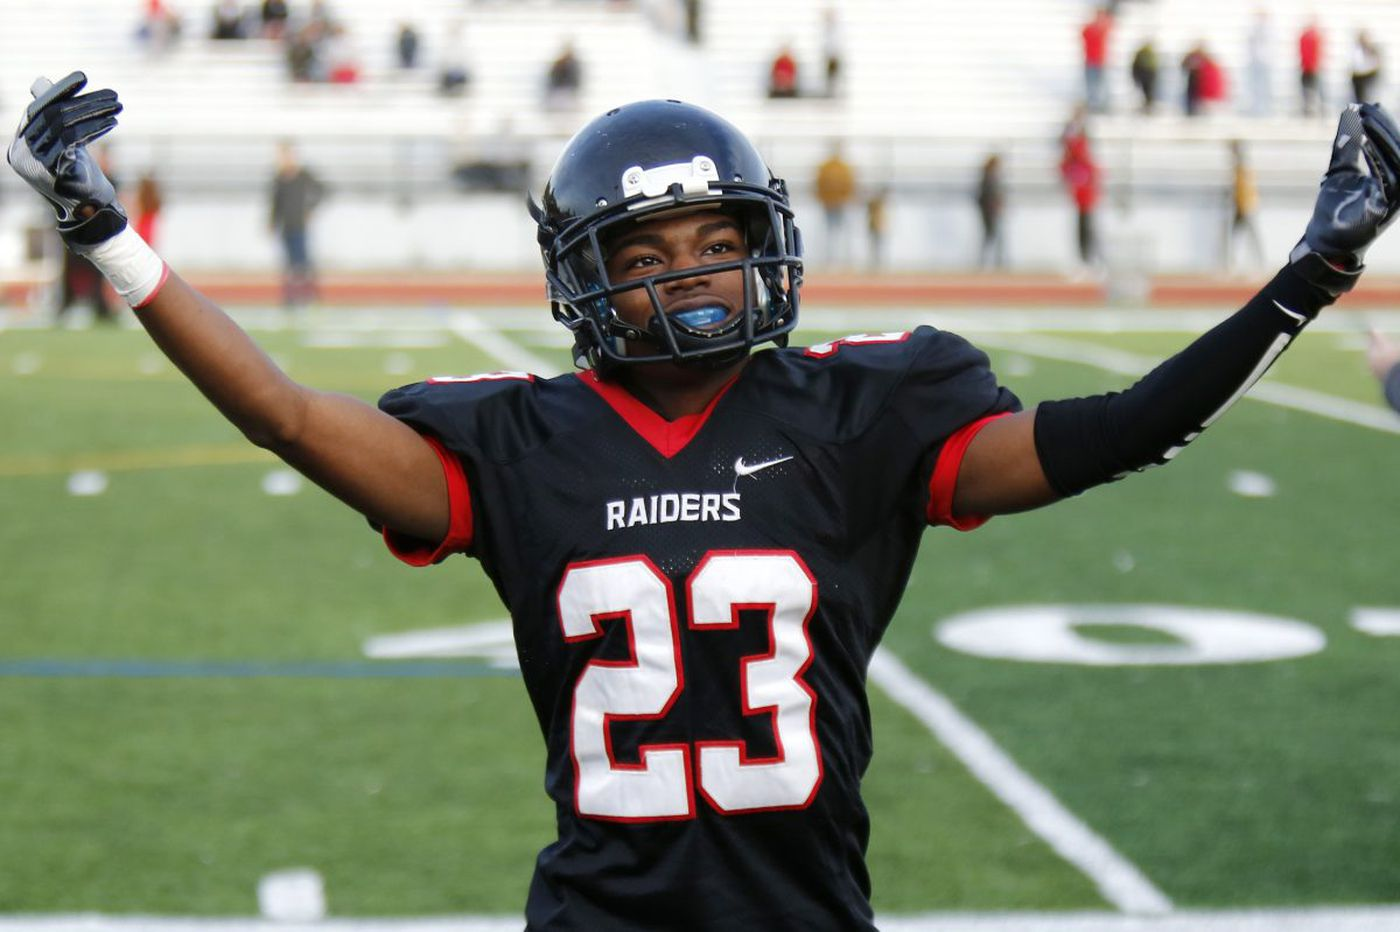 Archbishop Ryan ekes out playoff victory over Archbishop Carroll